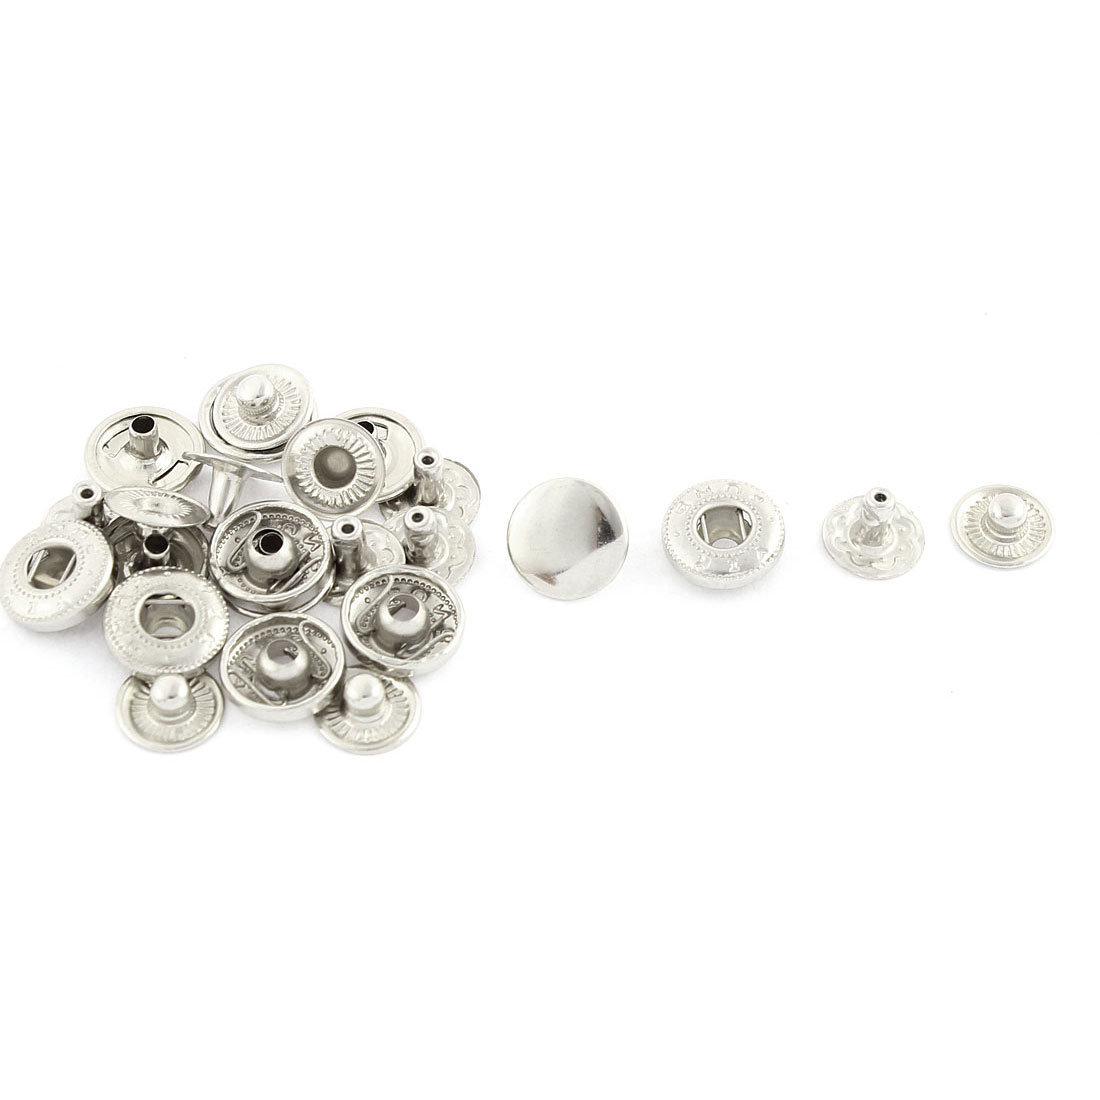 6 Sets Silver Tone Clothing Leather Craft Press Stud Button Fastener 10mm